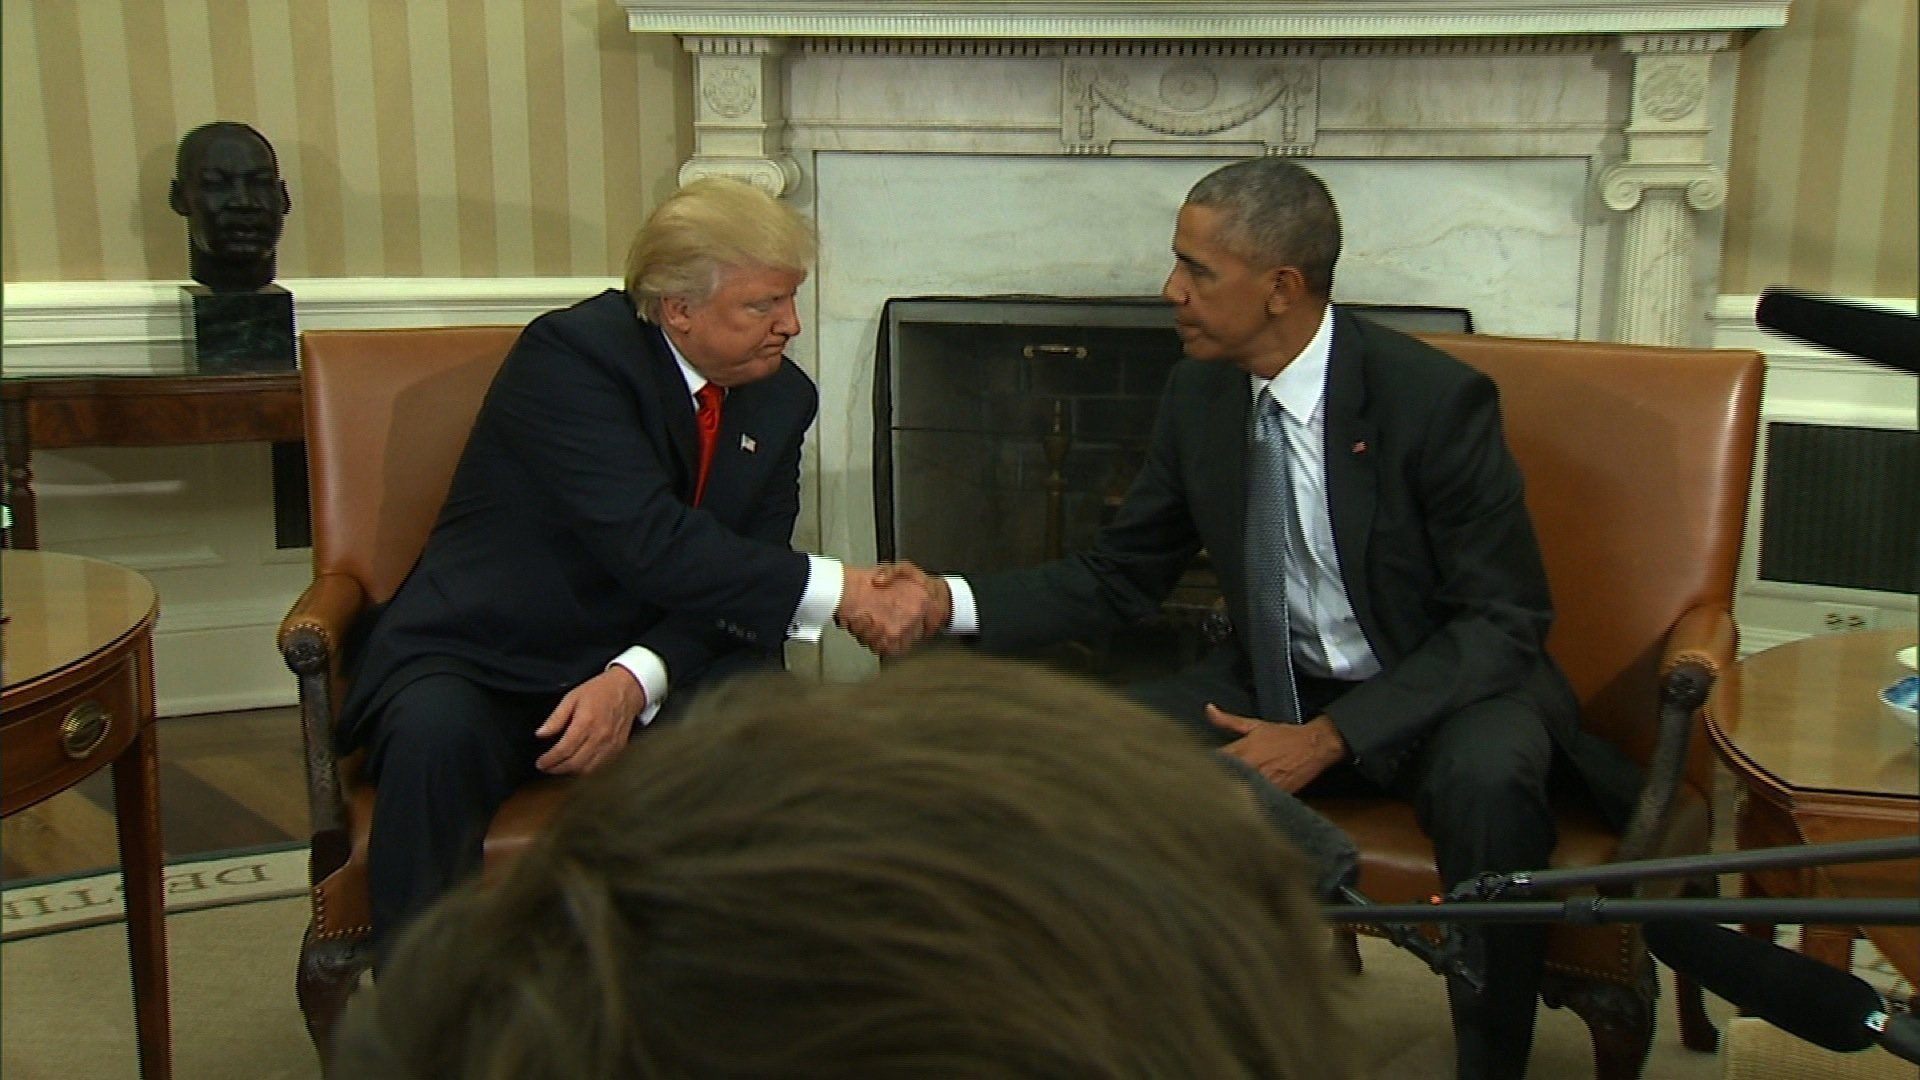 President Elect Donald Trump and President Barack Obama meet in the Oval Office, marking a new beginning. (Source: CNN)